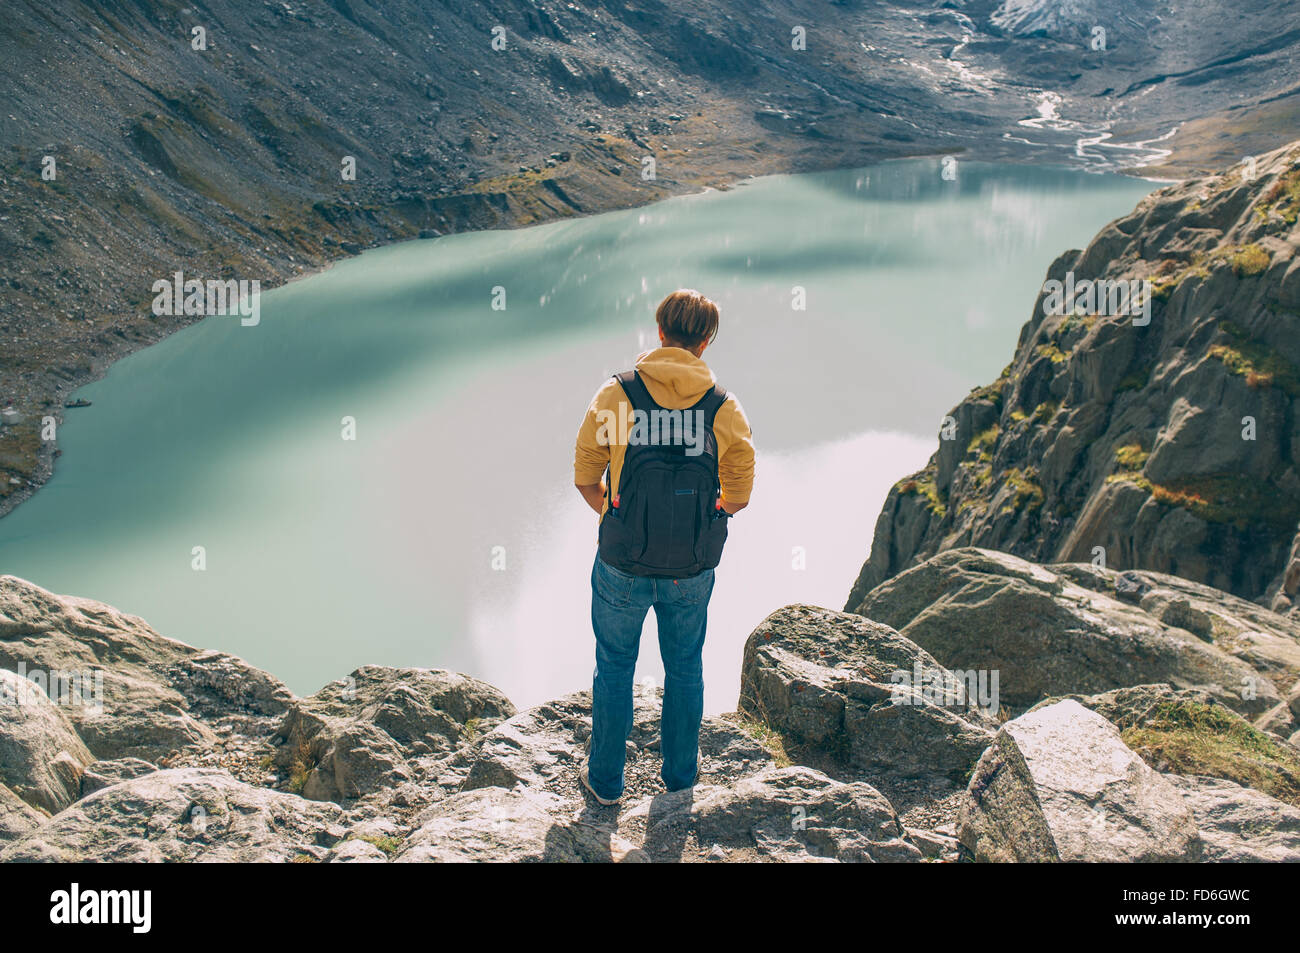 Young Man Looking At Mountain Lake From Elevated Spot - Stock Image